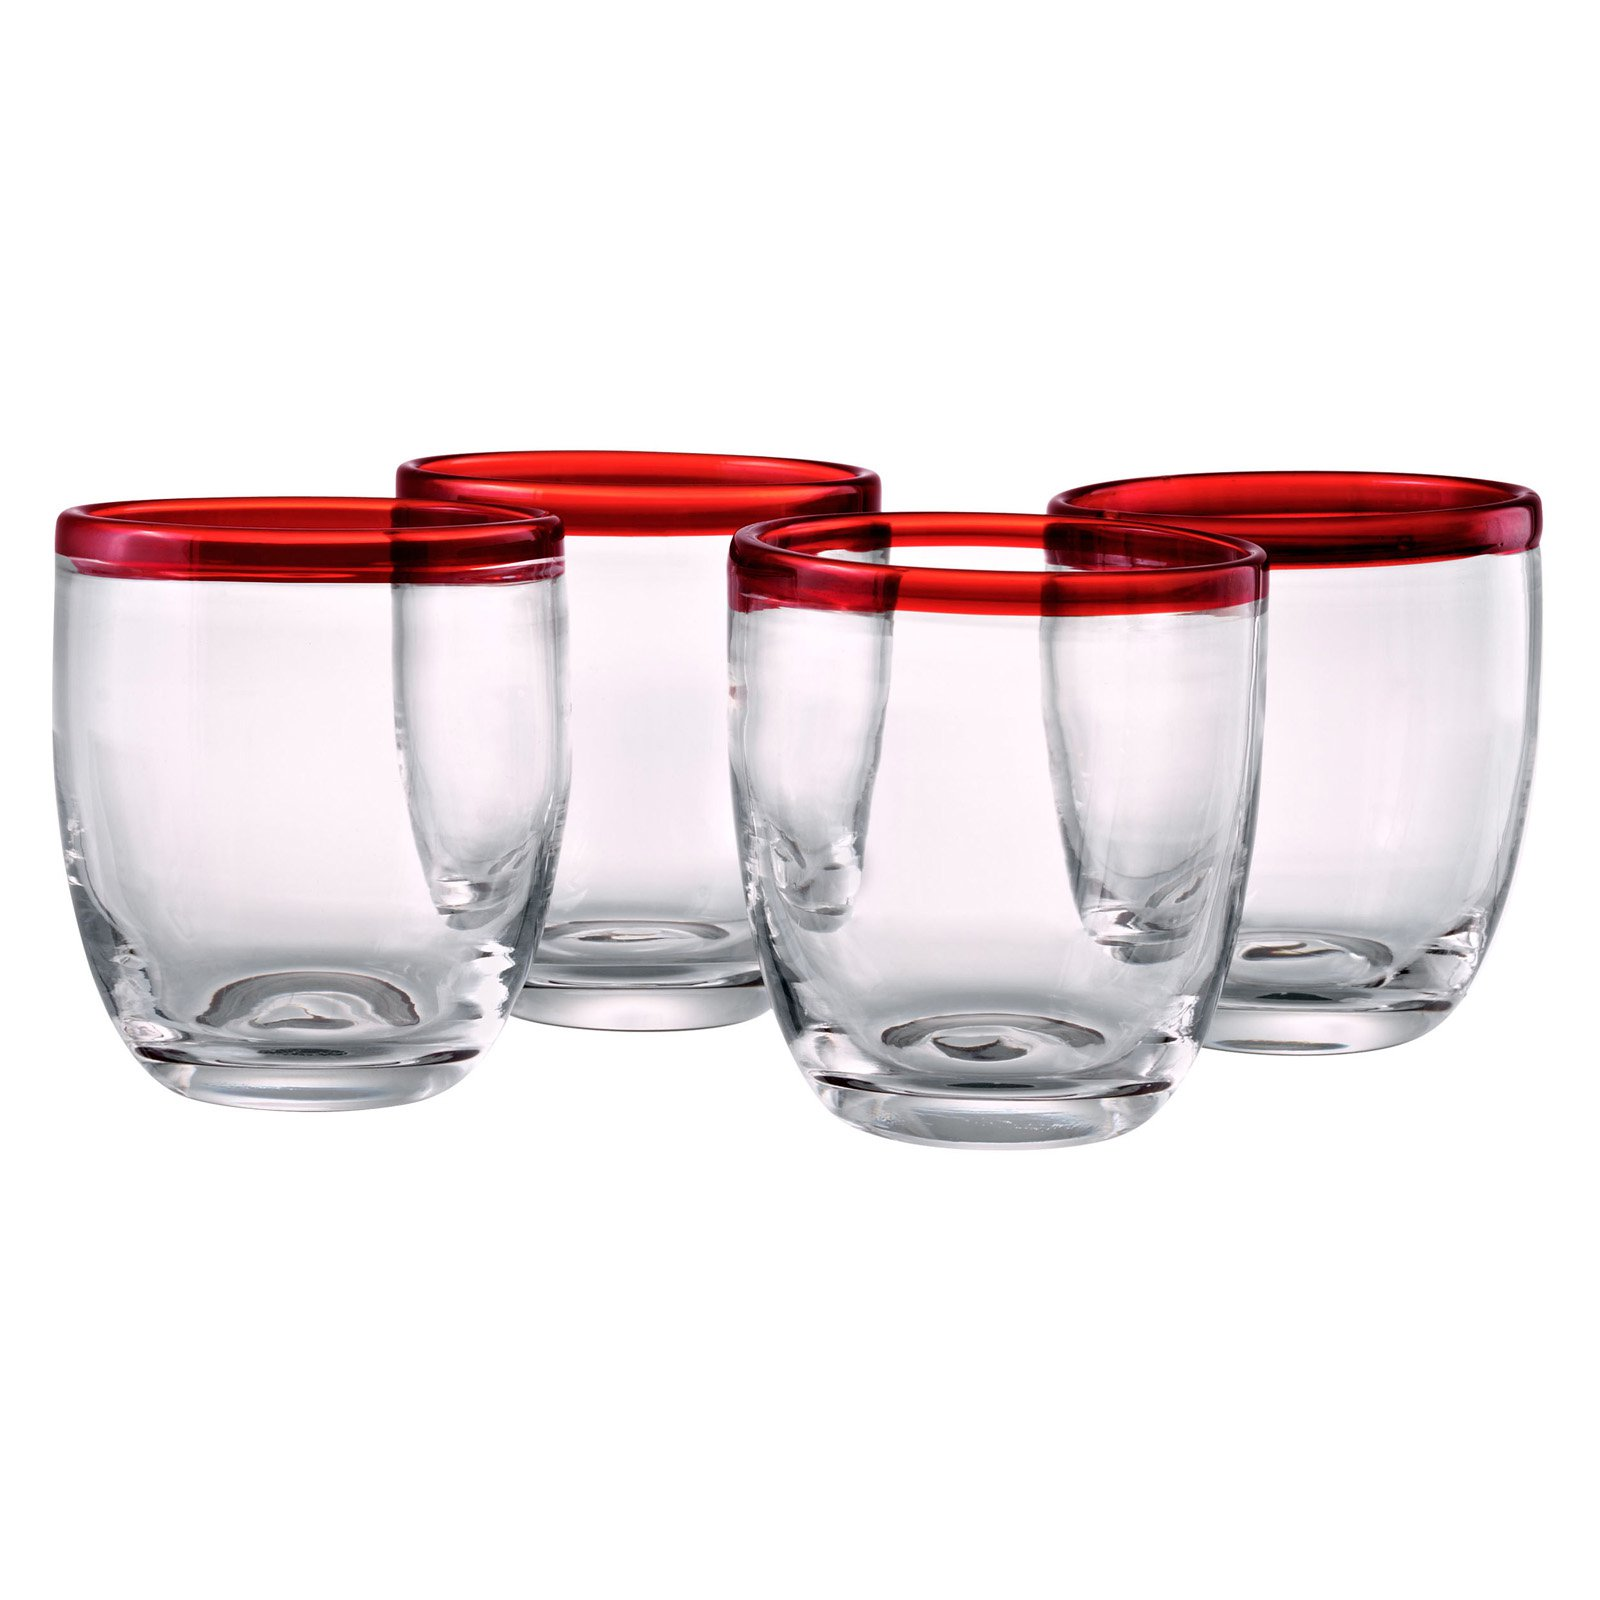 Artland Inc. Festival Scarlet DOF Glasses - Set of 4